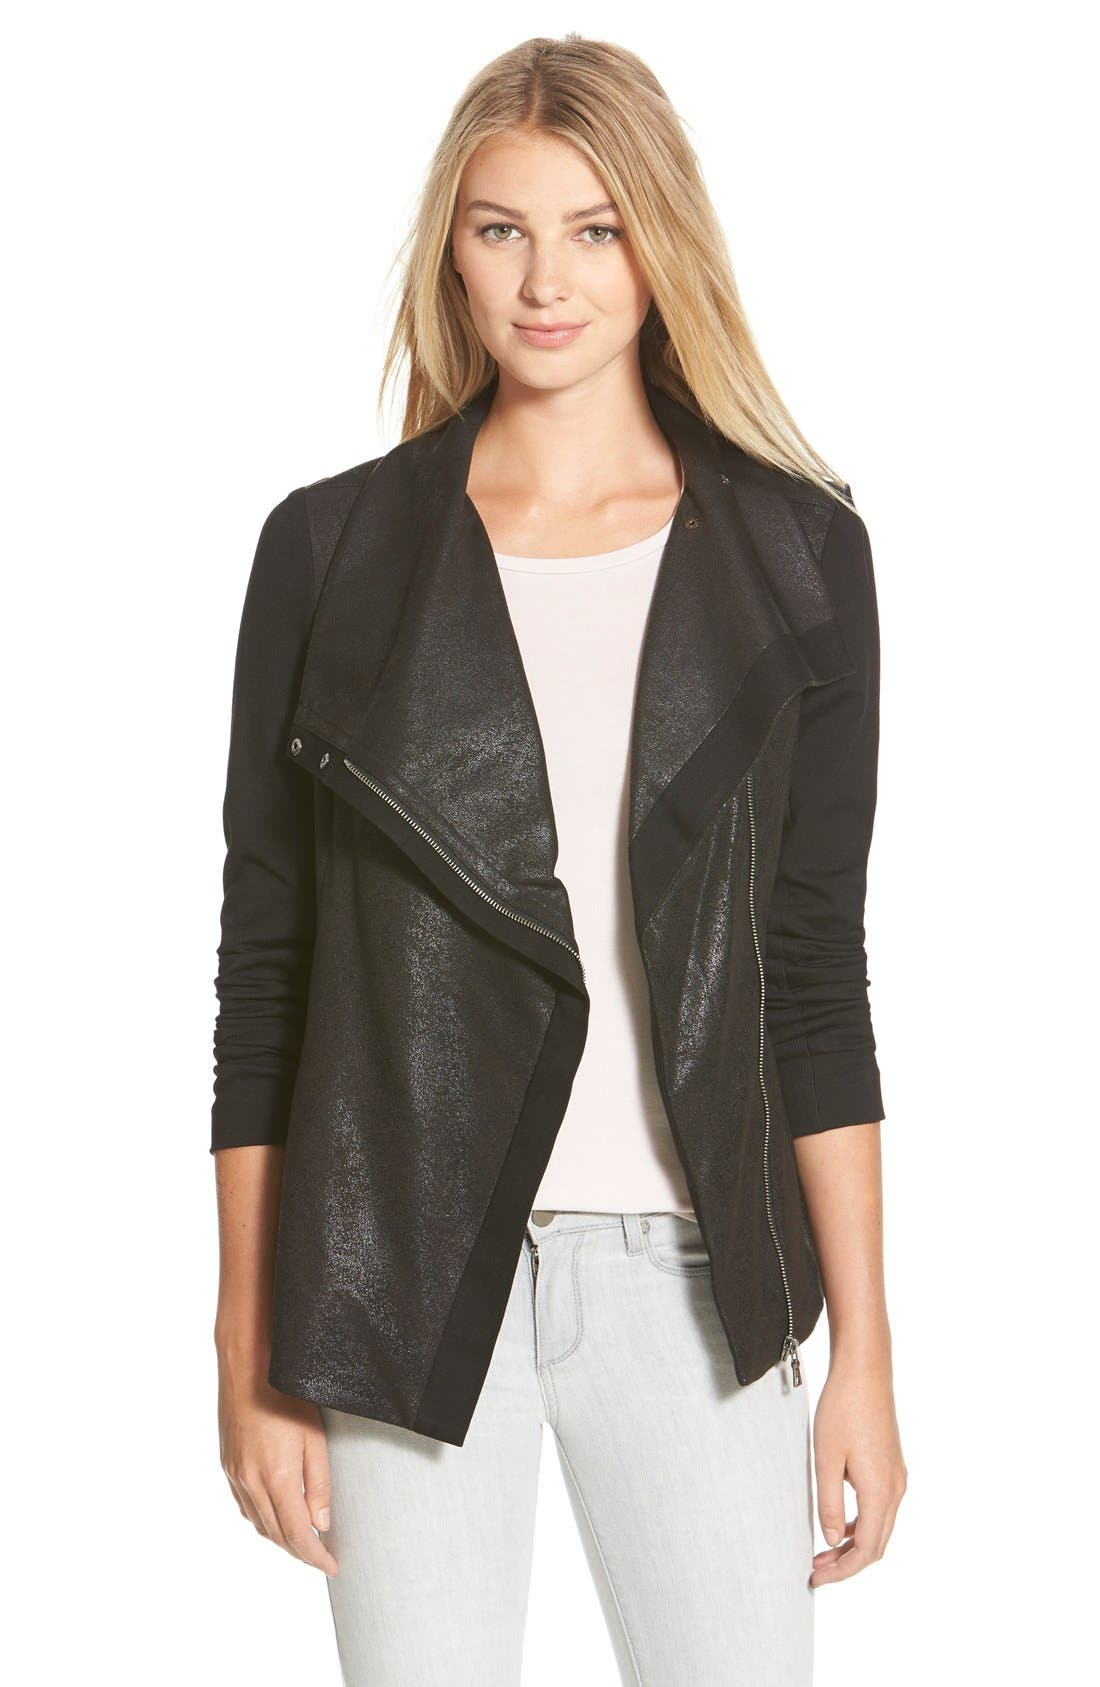 Distressed Foil Ponte Knit Asymmetrical Jacket,                             Main thumbnail 1, color,                             006